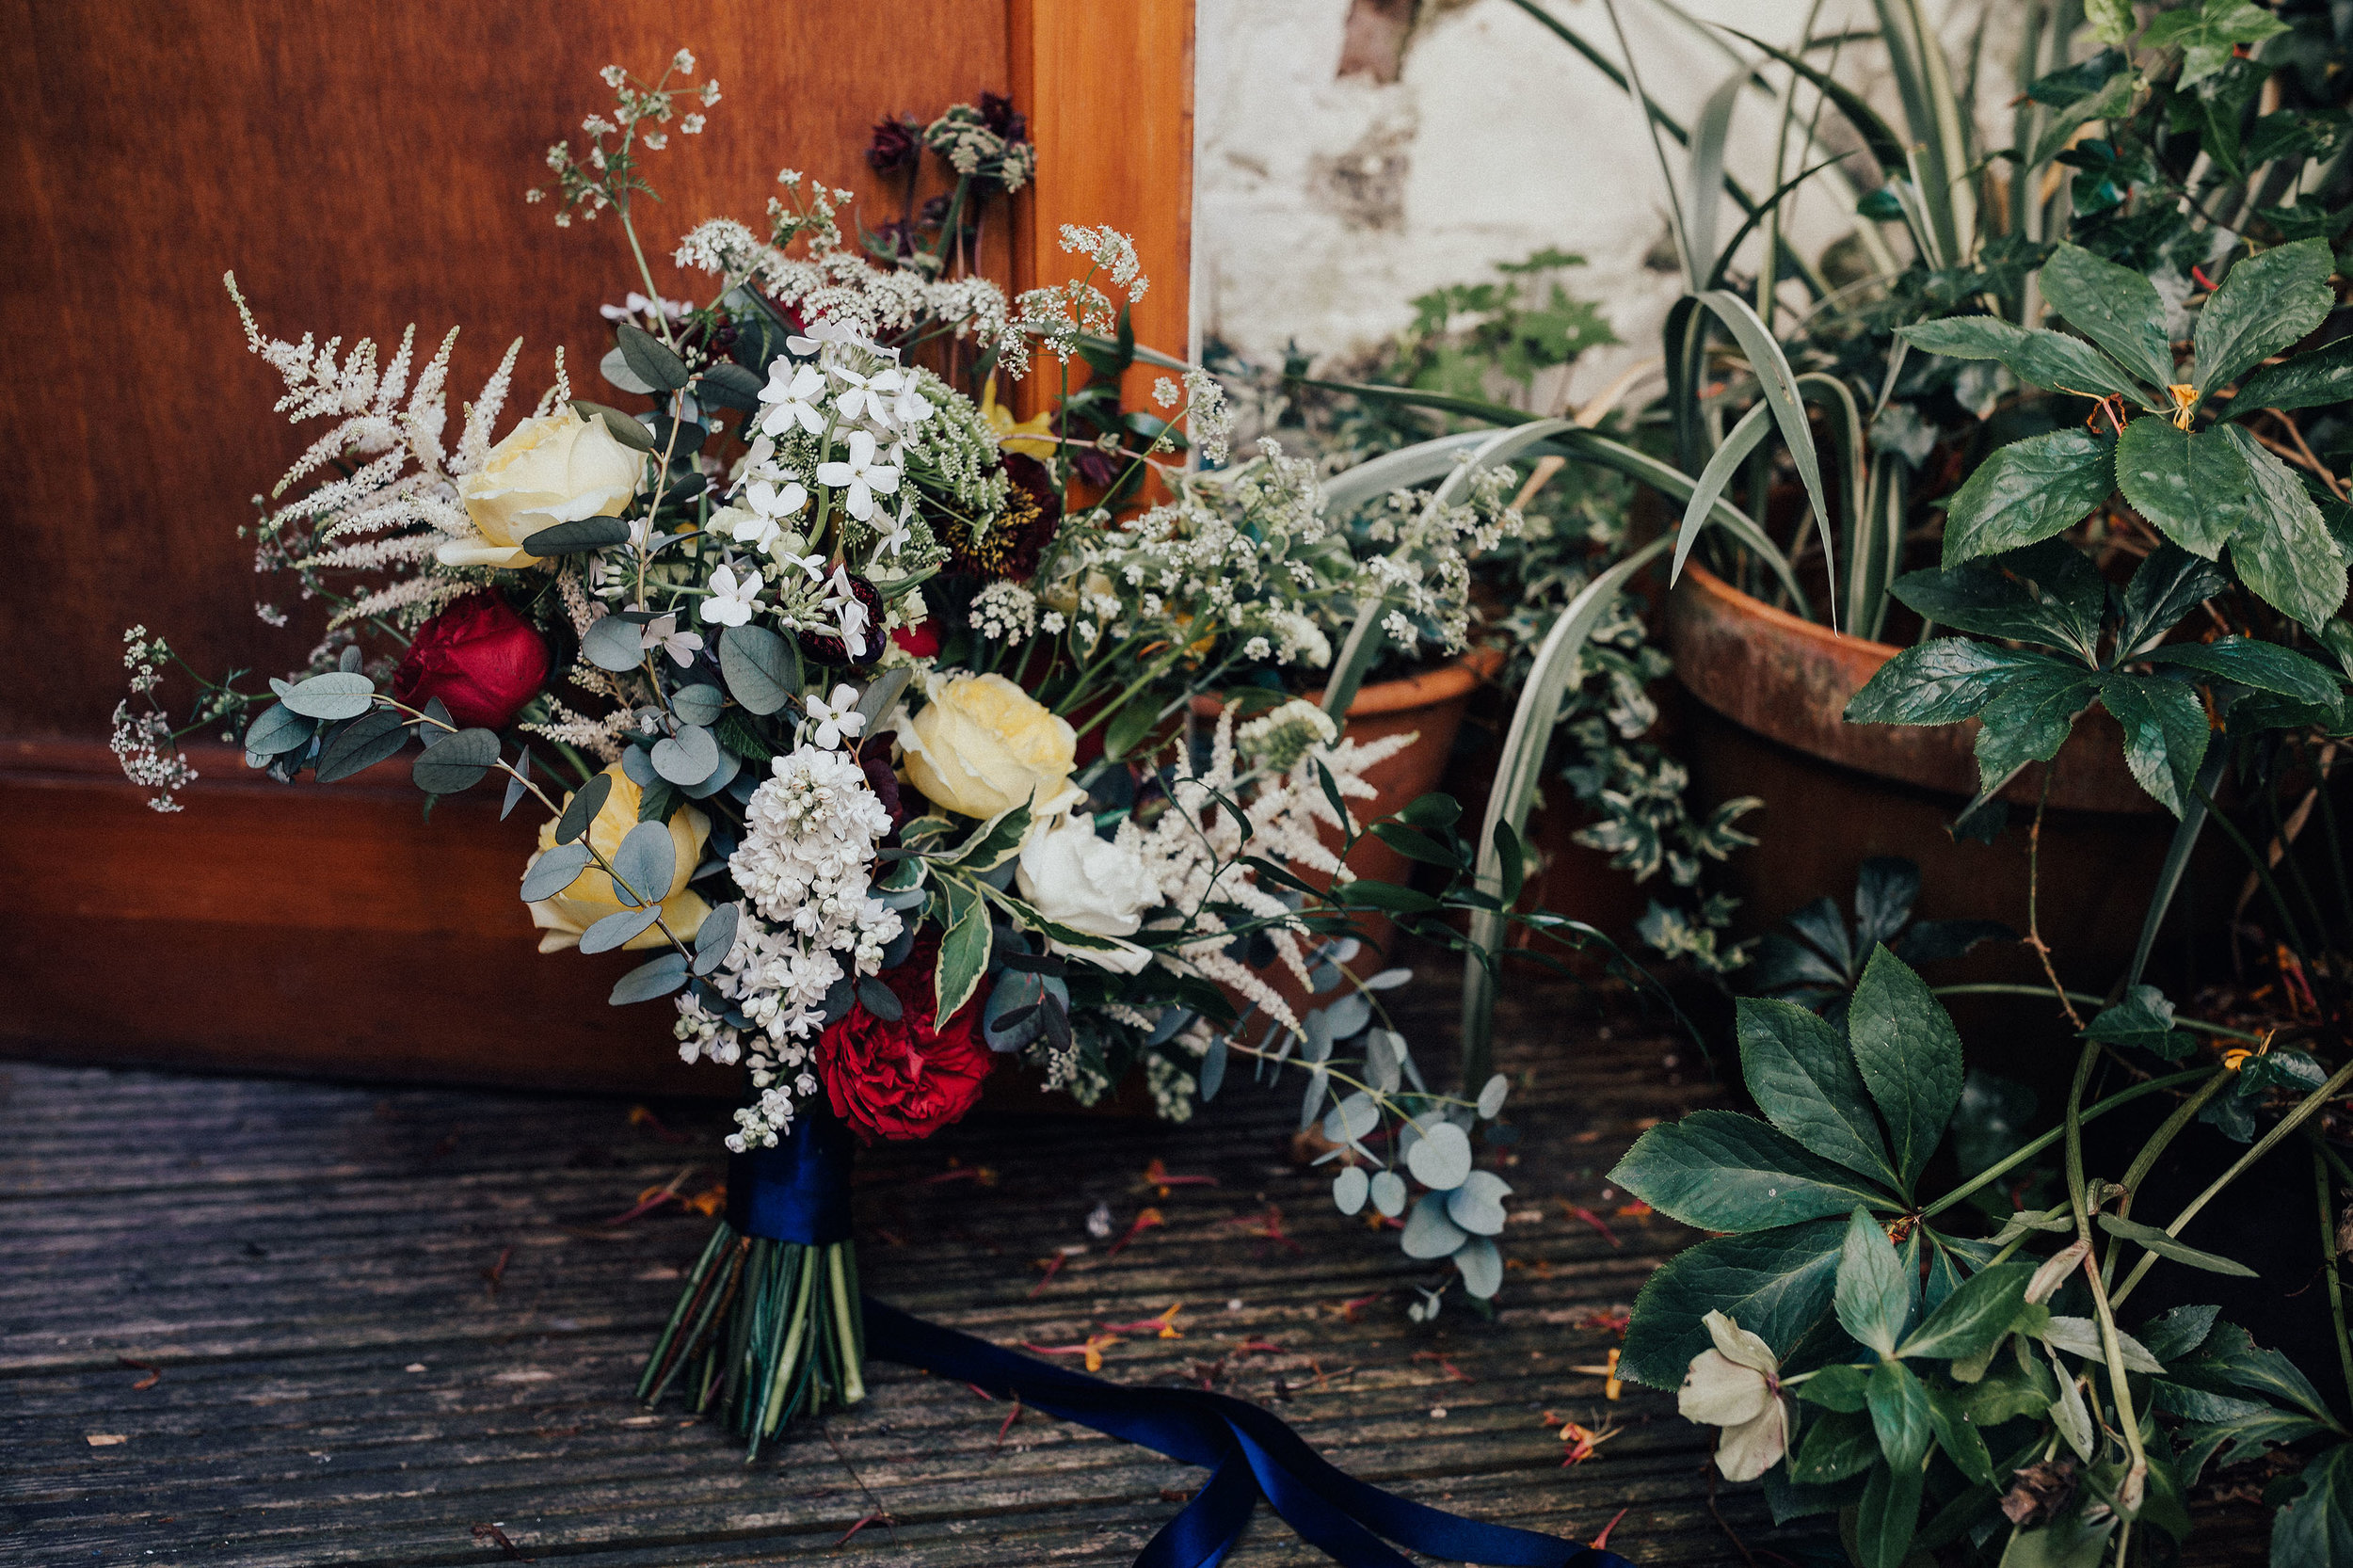 TIMBERYARD_EDINBURGH_WEDDING_PJ_PHILLIPS_PHOTOGRAPHY_9.jpg